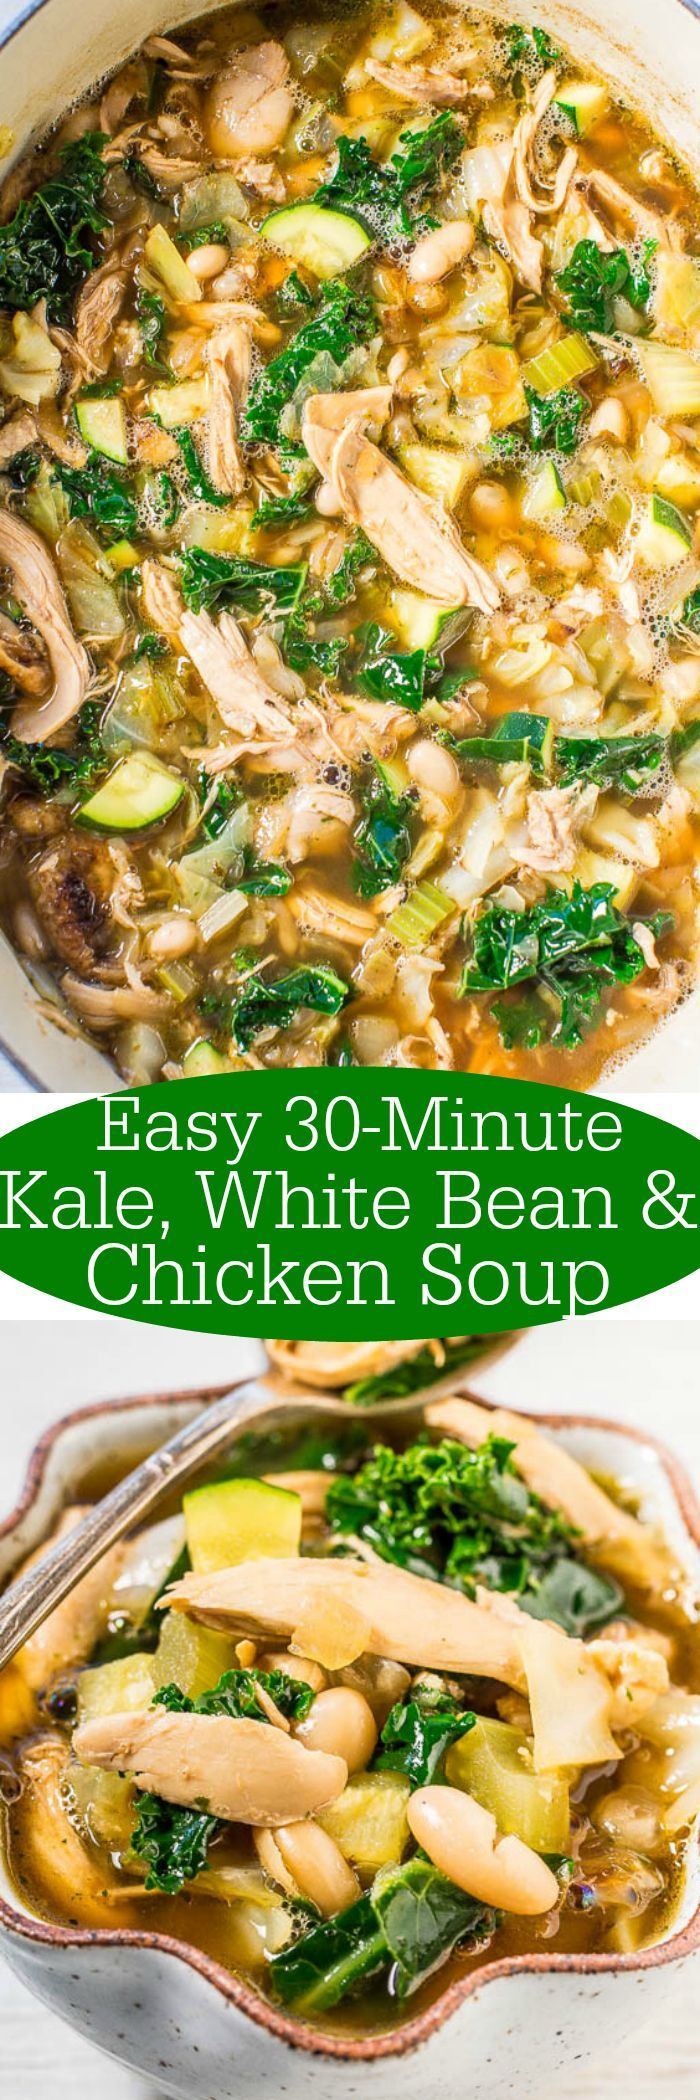 Easy 30-Minute Kale, White Bean, and Chicken Soup - Loaded with juicy chicken, healthy kale, and tender beans! Easy, hearty, and satisfying! Love it when something healthy tastes so good!! Great starter for your next party!